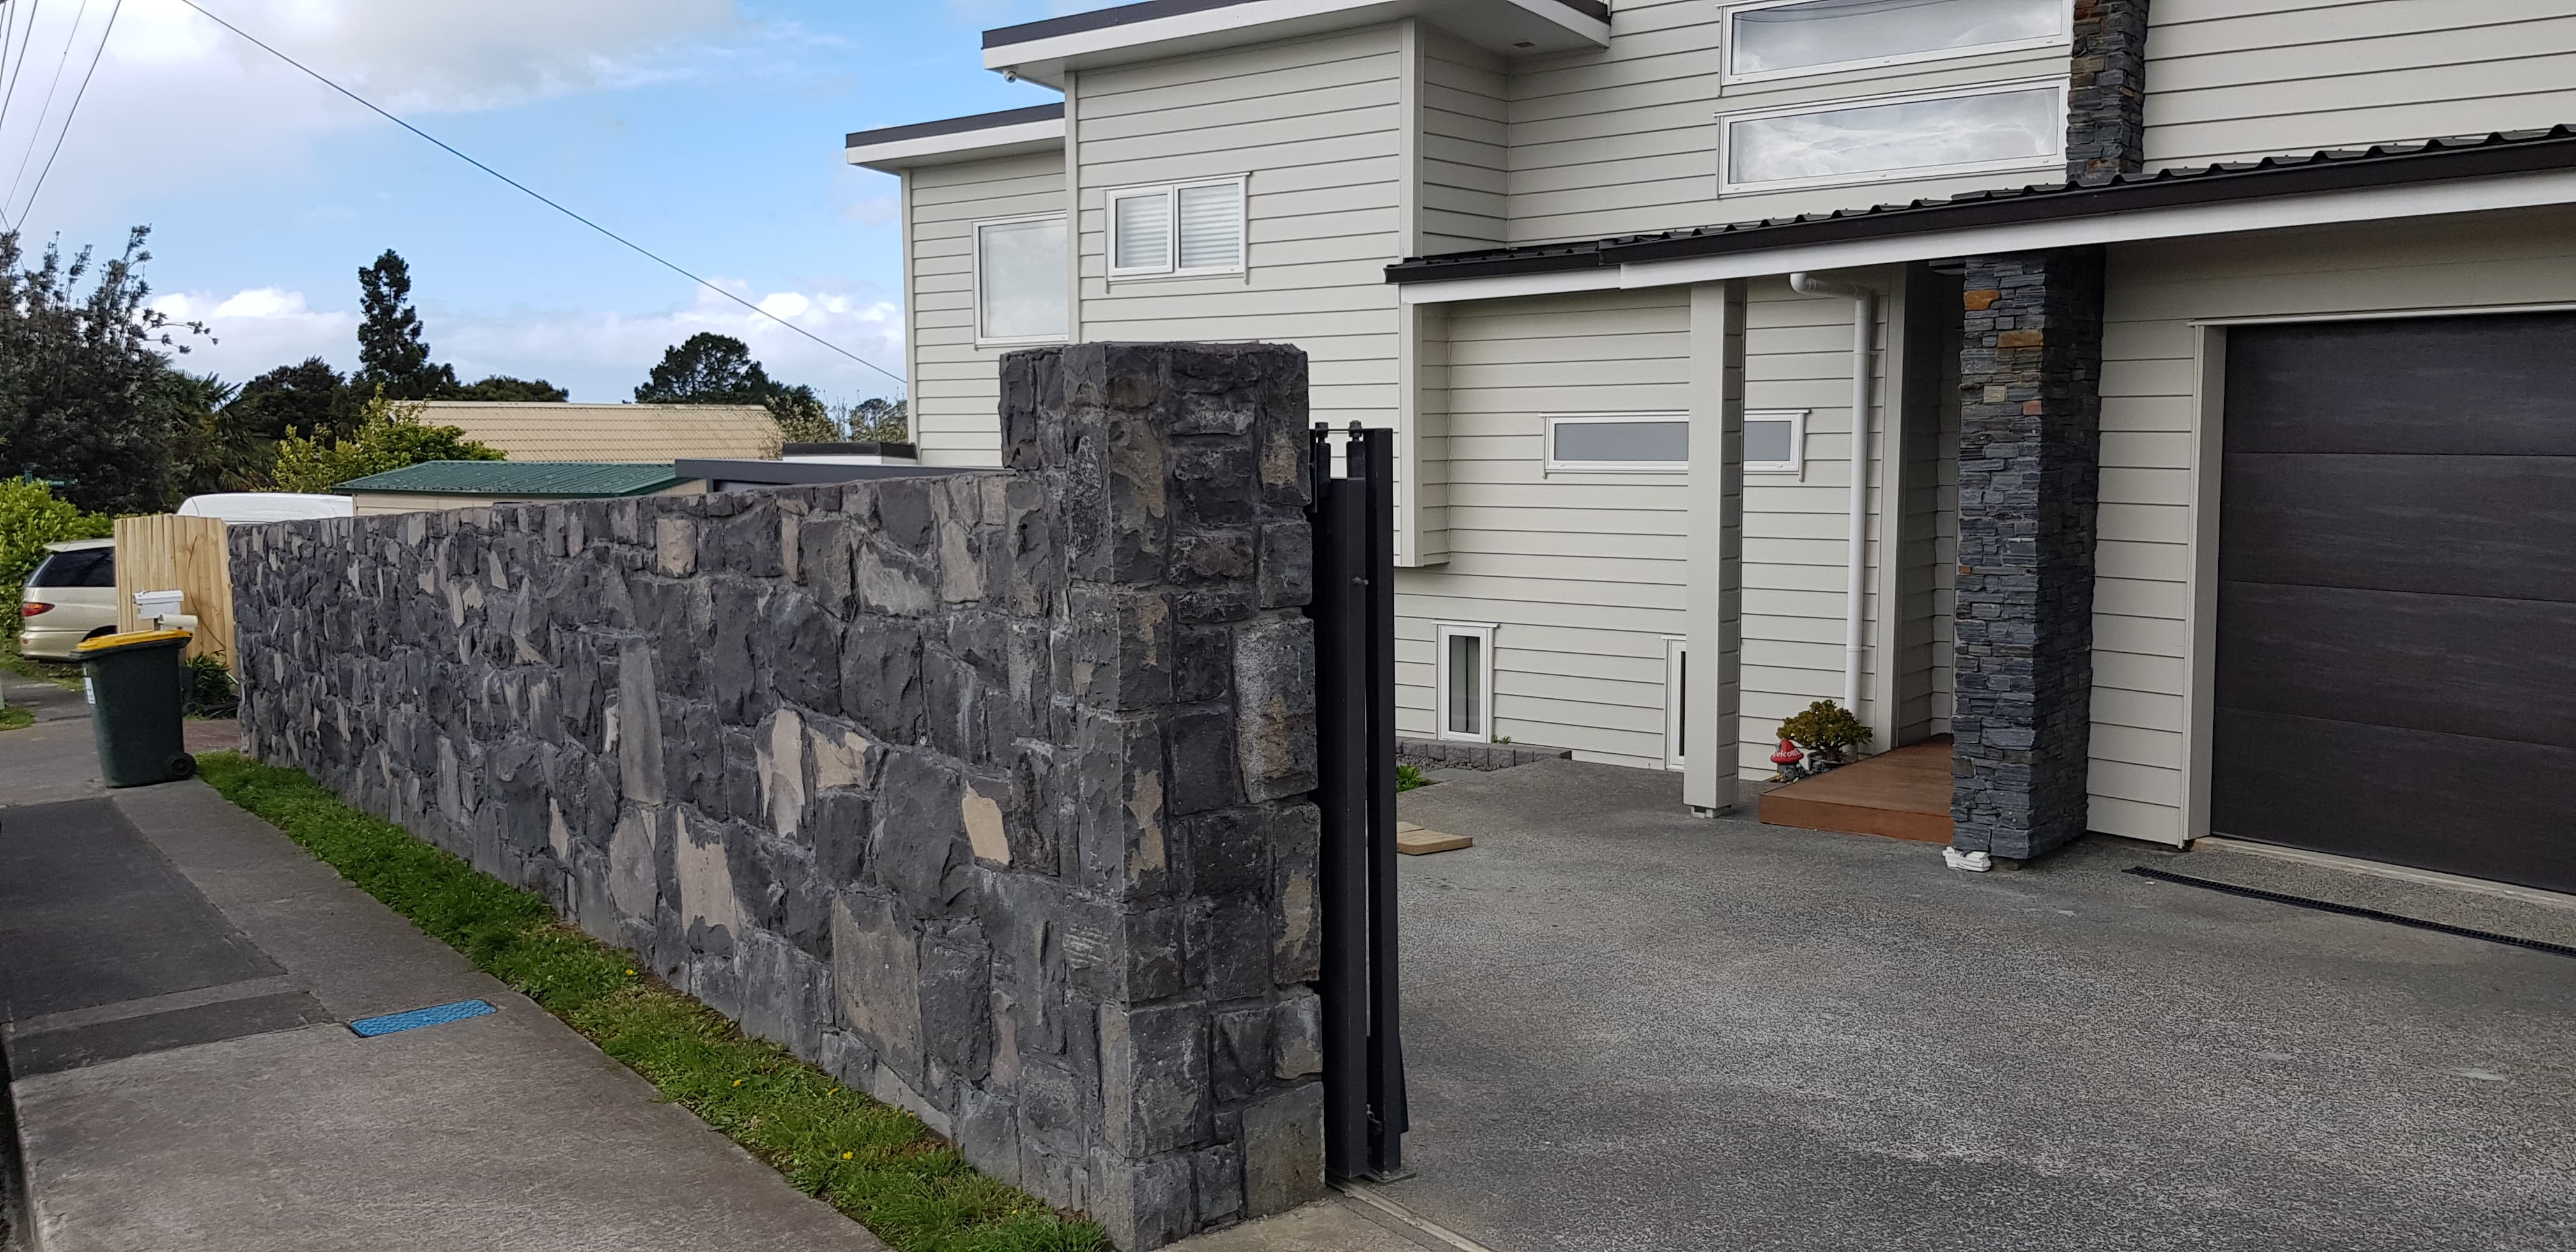 Boundary Wall & Entrance - Torbay